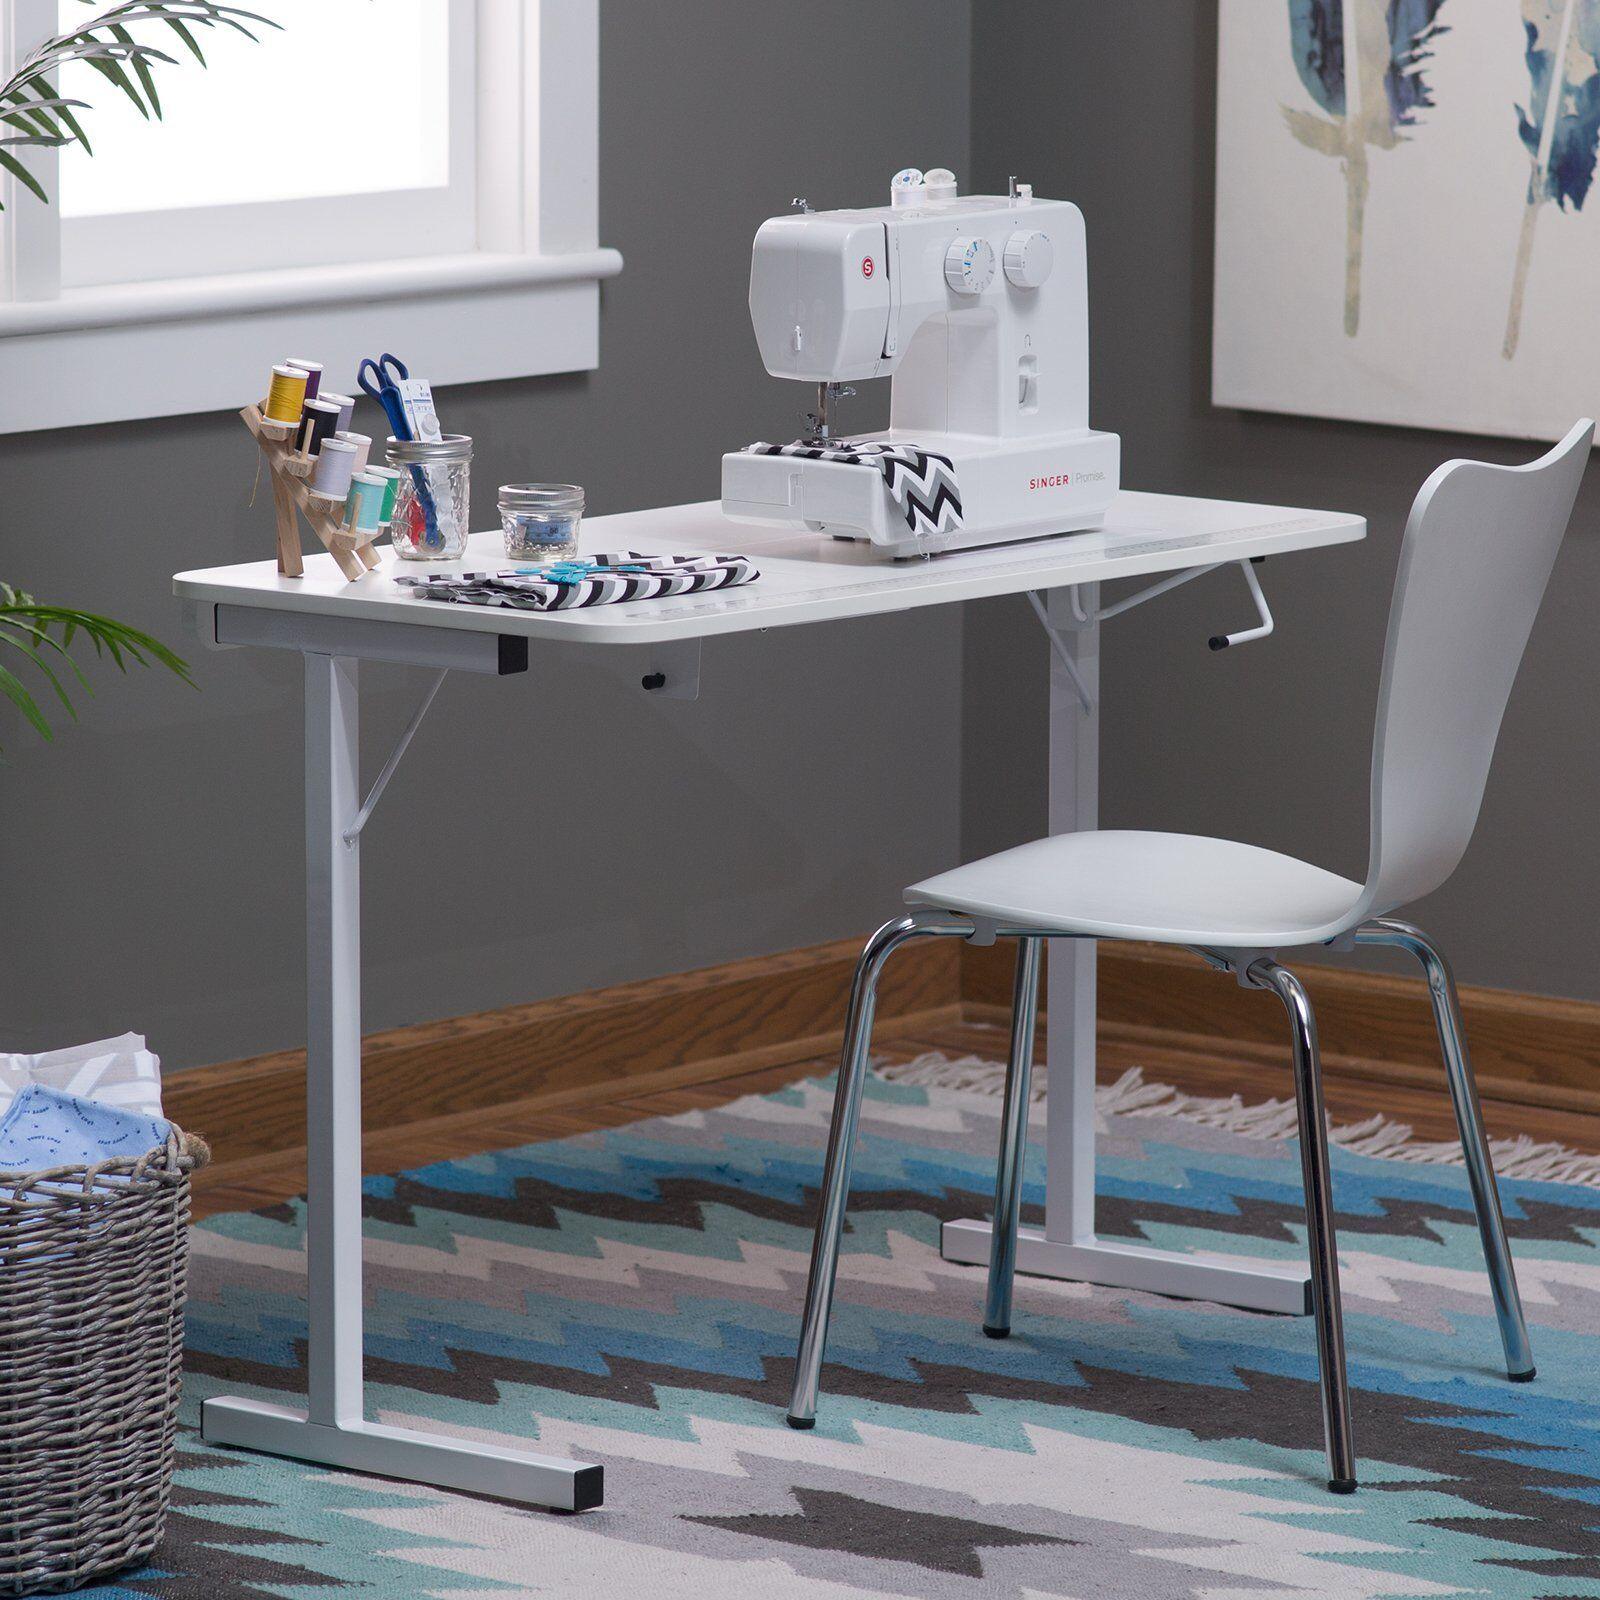 sewing machine table - HD1600×1600